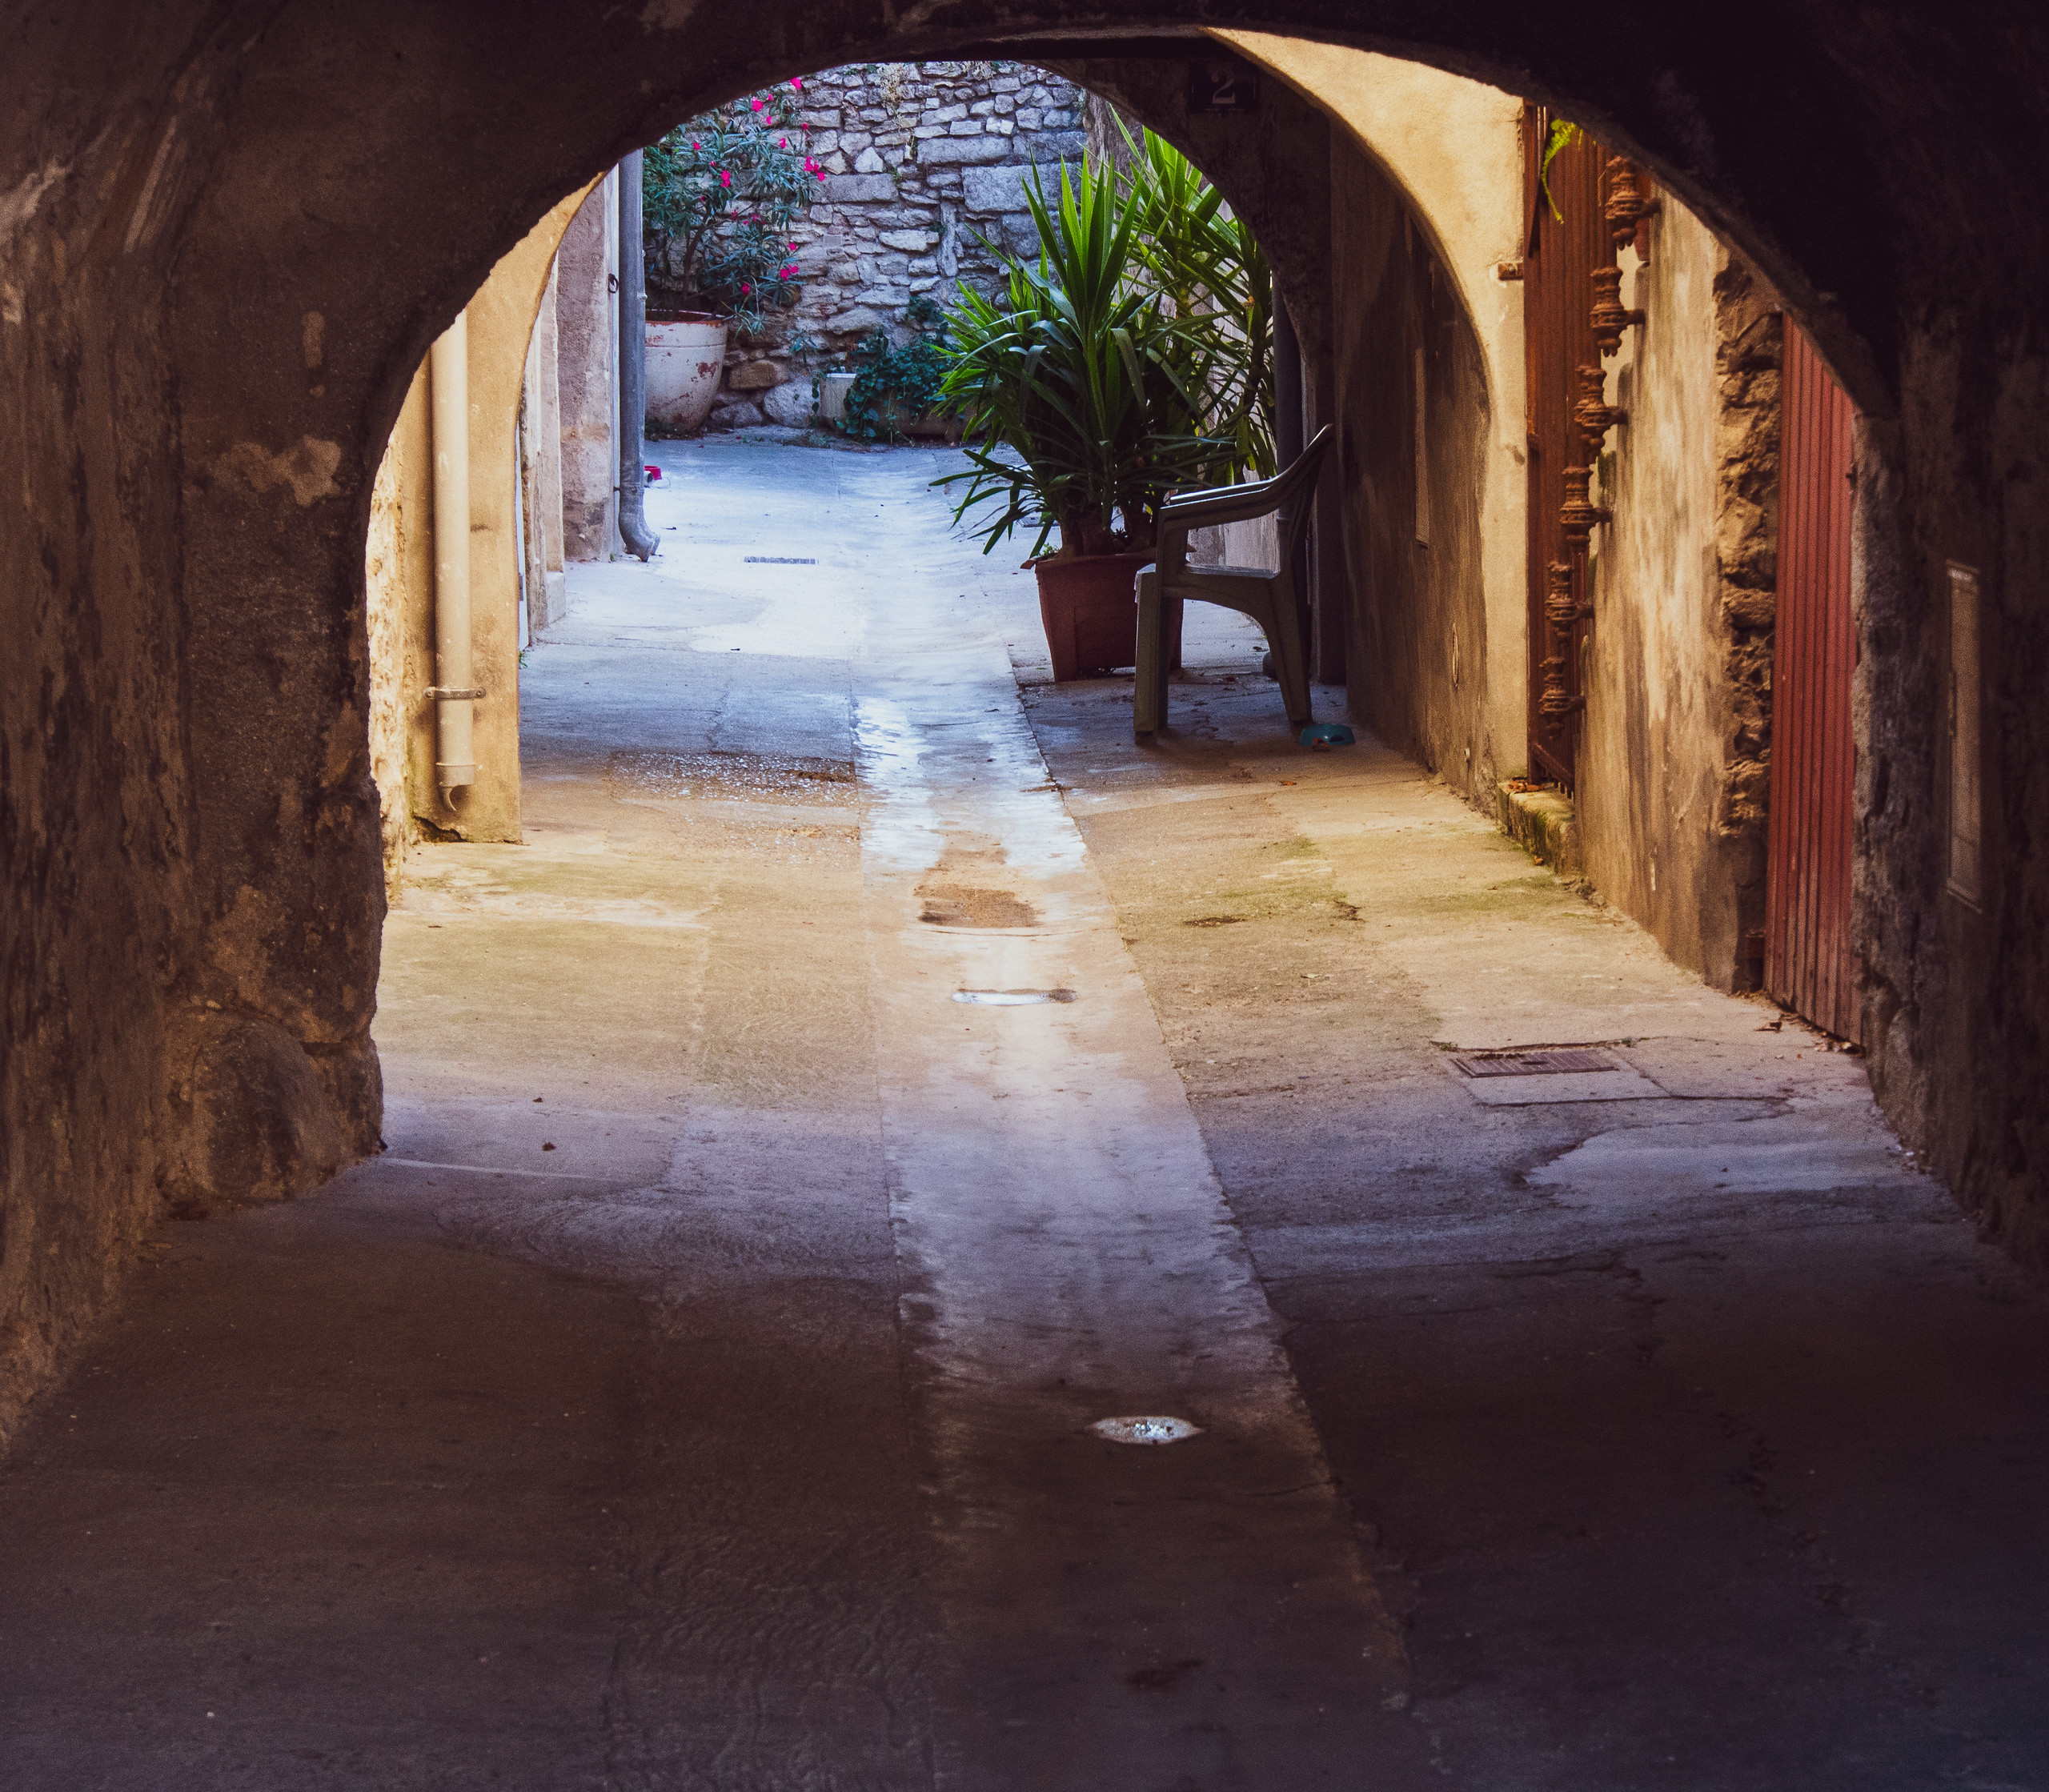 A centuries old passage in Avignon.